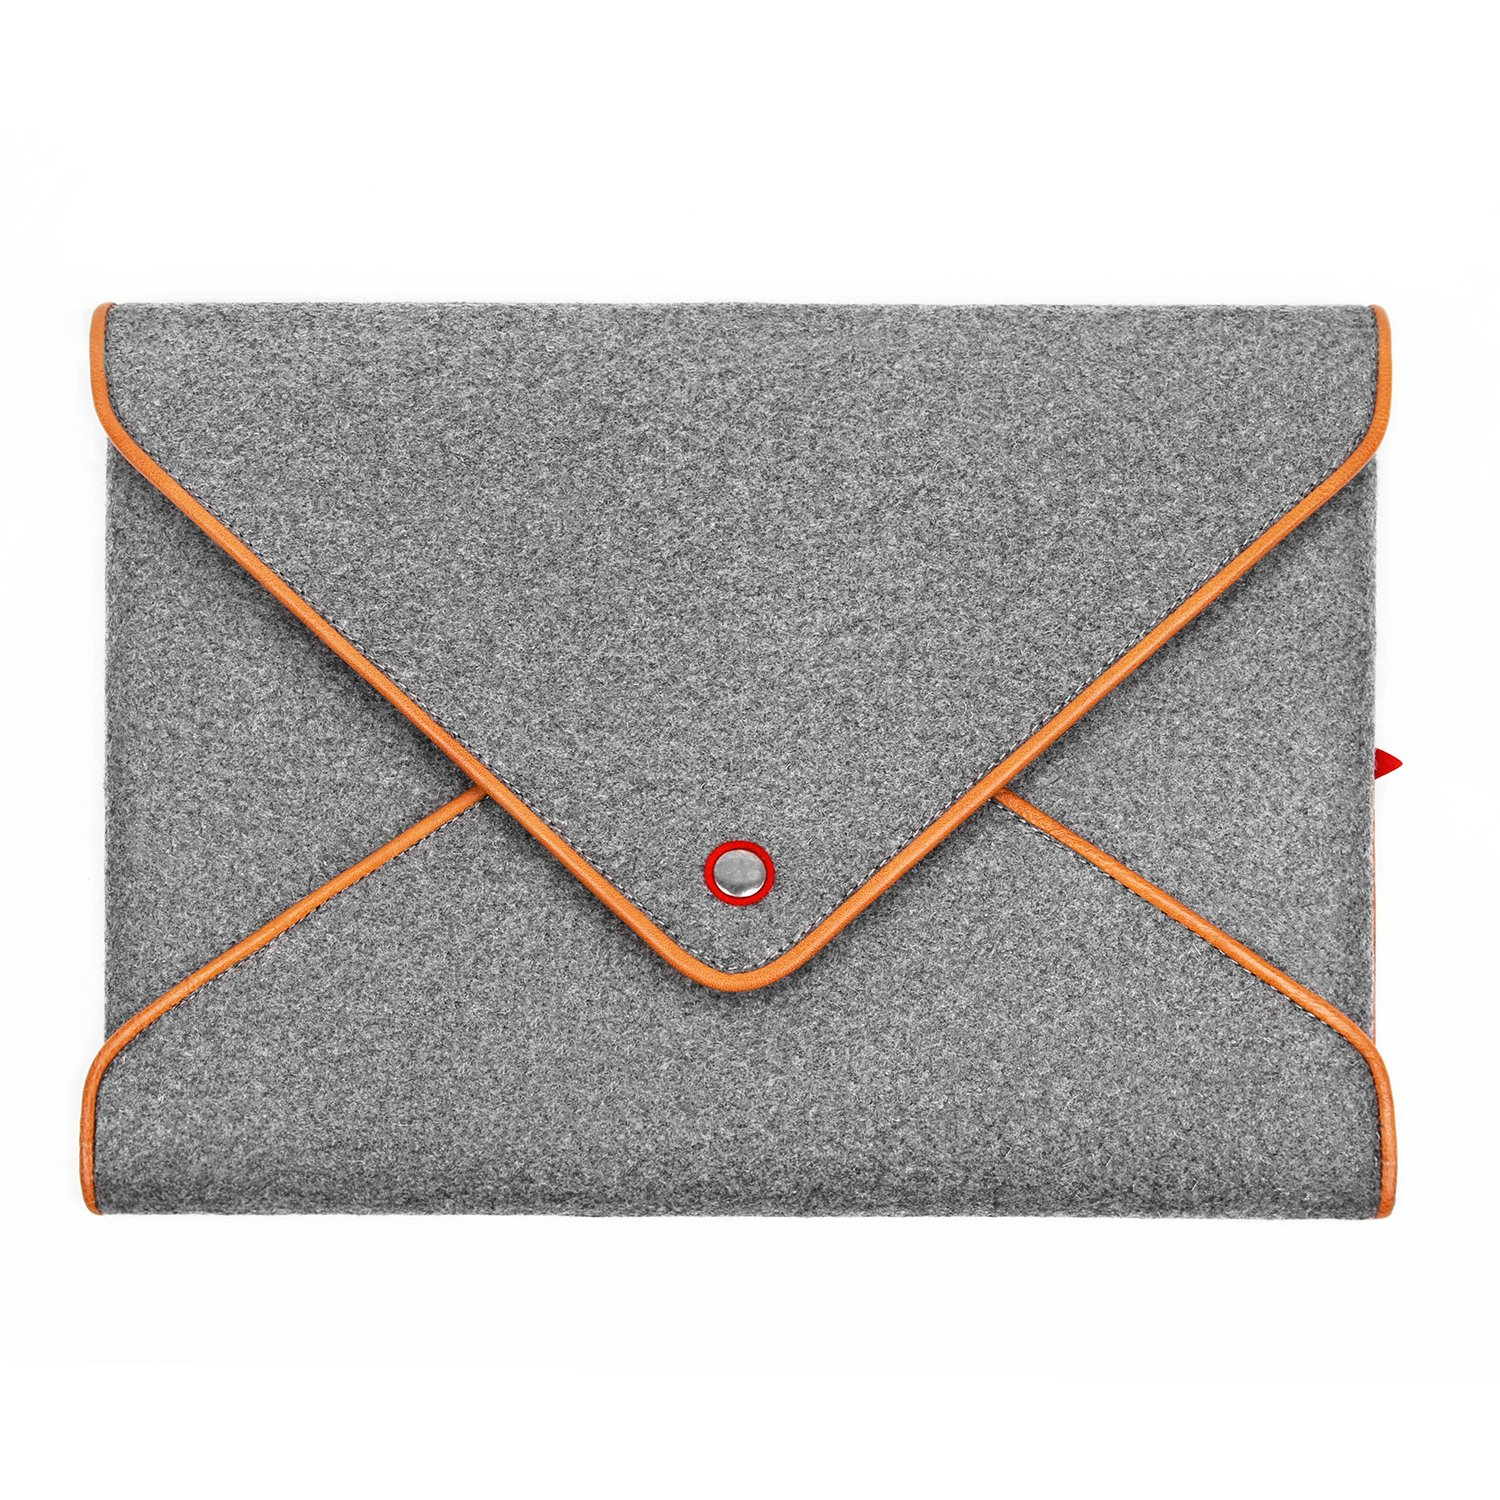 TOPHOME Laptop Sleeve Business Office Bag Messenger Bag 15-15.4 Inch for Macbook Air Case Notebook/Computer/Tablet/Acer/HP/Dell/Lenovo Notebook/Computer/Tablet/Acer/HP/Dell/Lenovo Wool Felt Leather